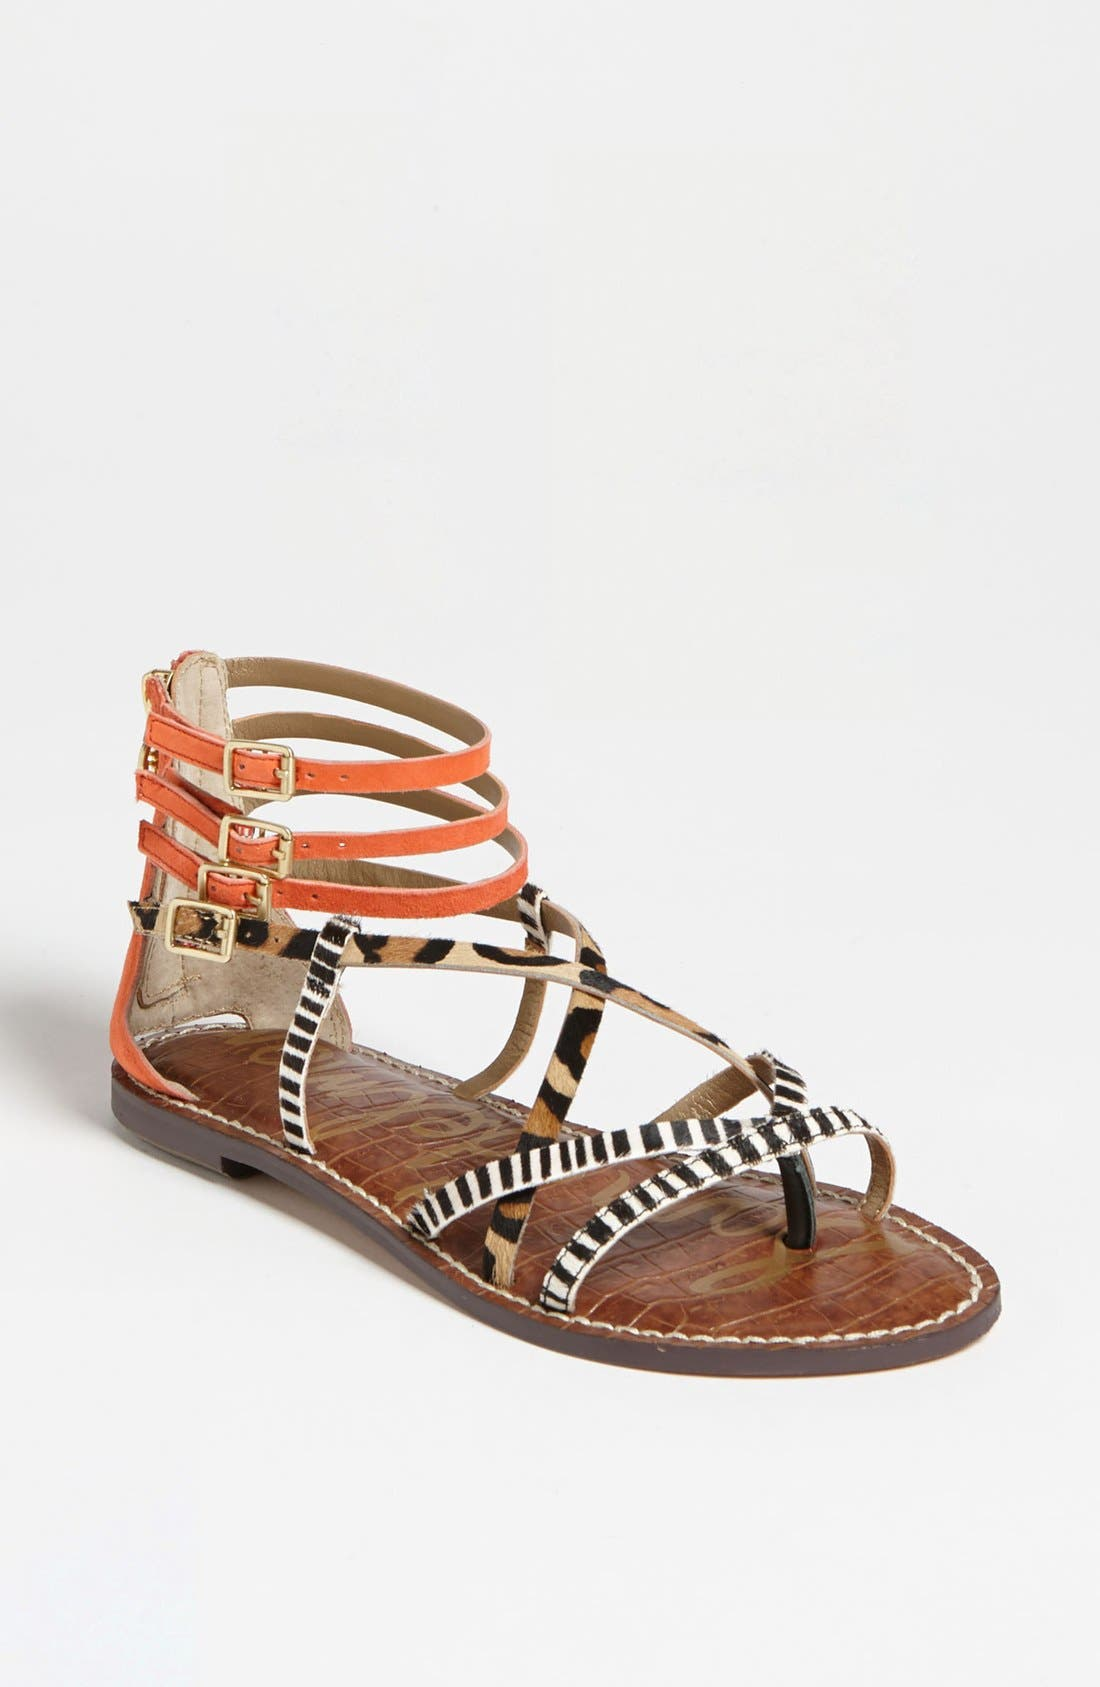 Alternate Image 1 Selected - Sam Edelman 'Gable' Sandal